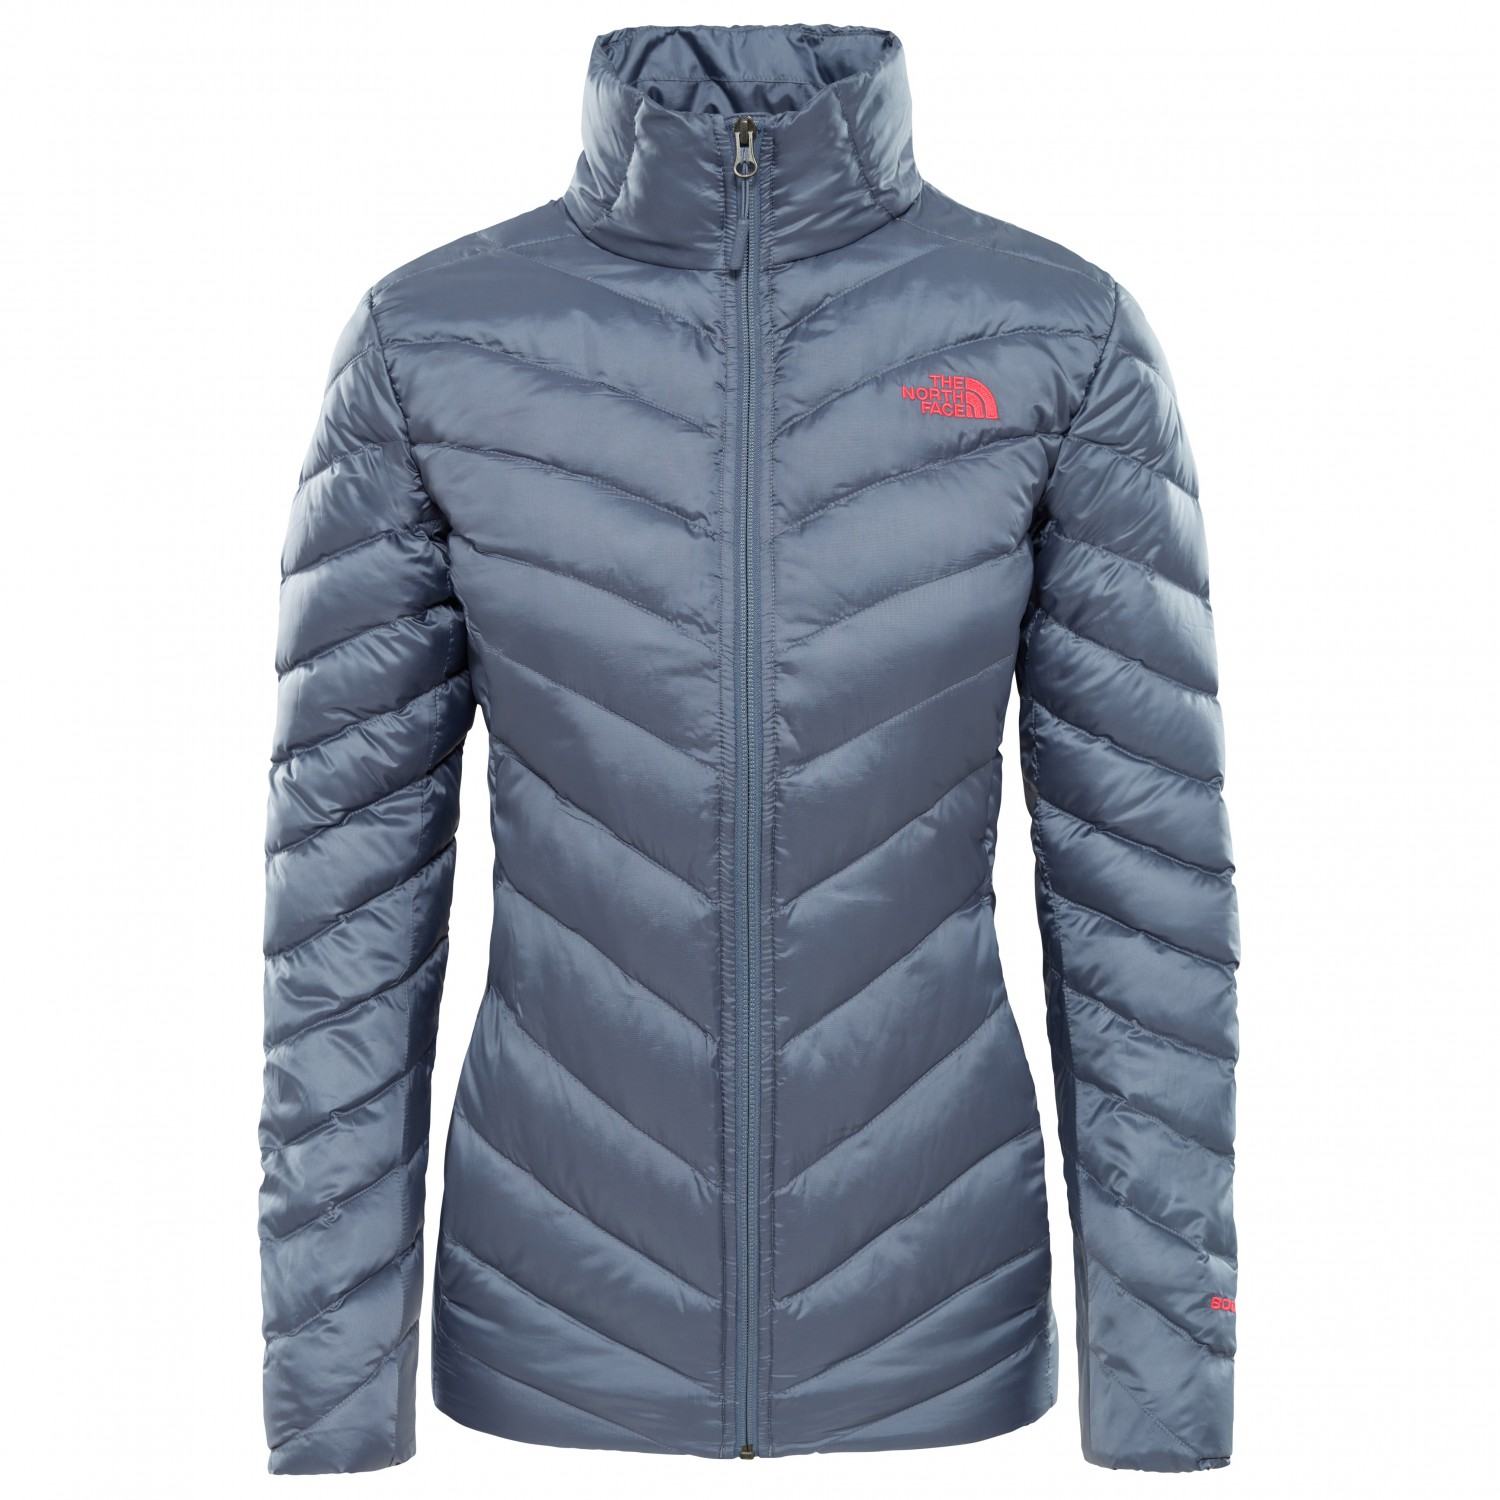 The North Face - Women's Trevail Jacket 700 - TNF Black | XS